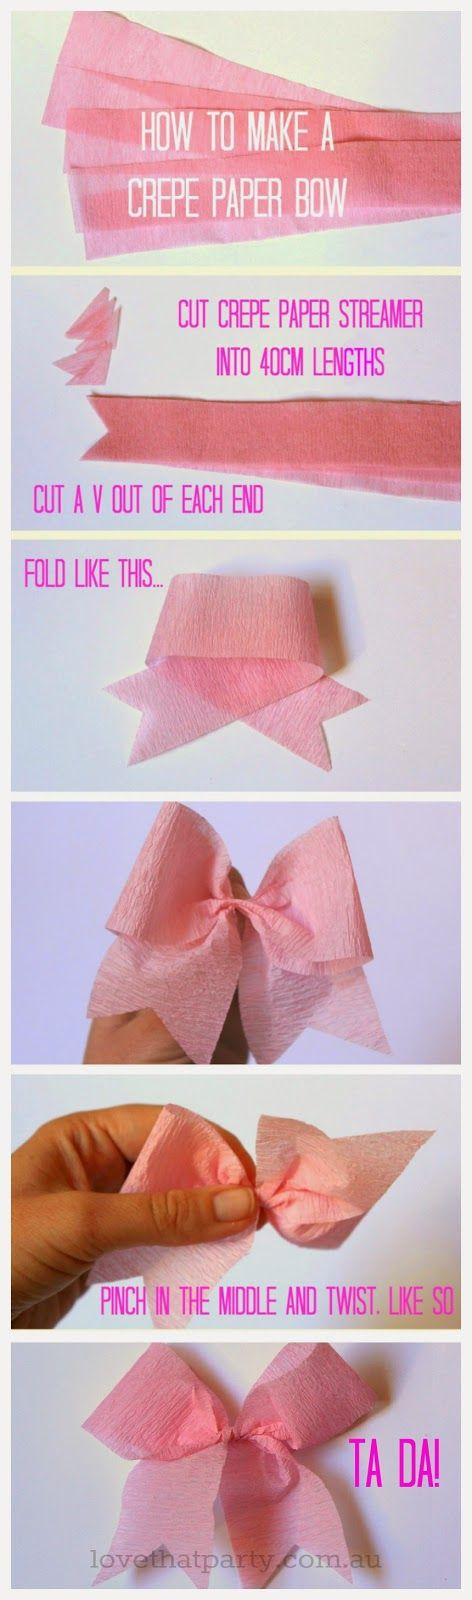 how to step by step photo instructions for making paper bows from crepe paper streamers.